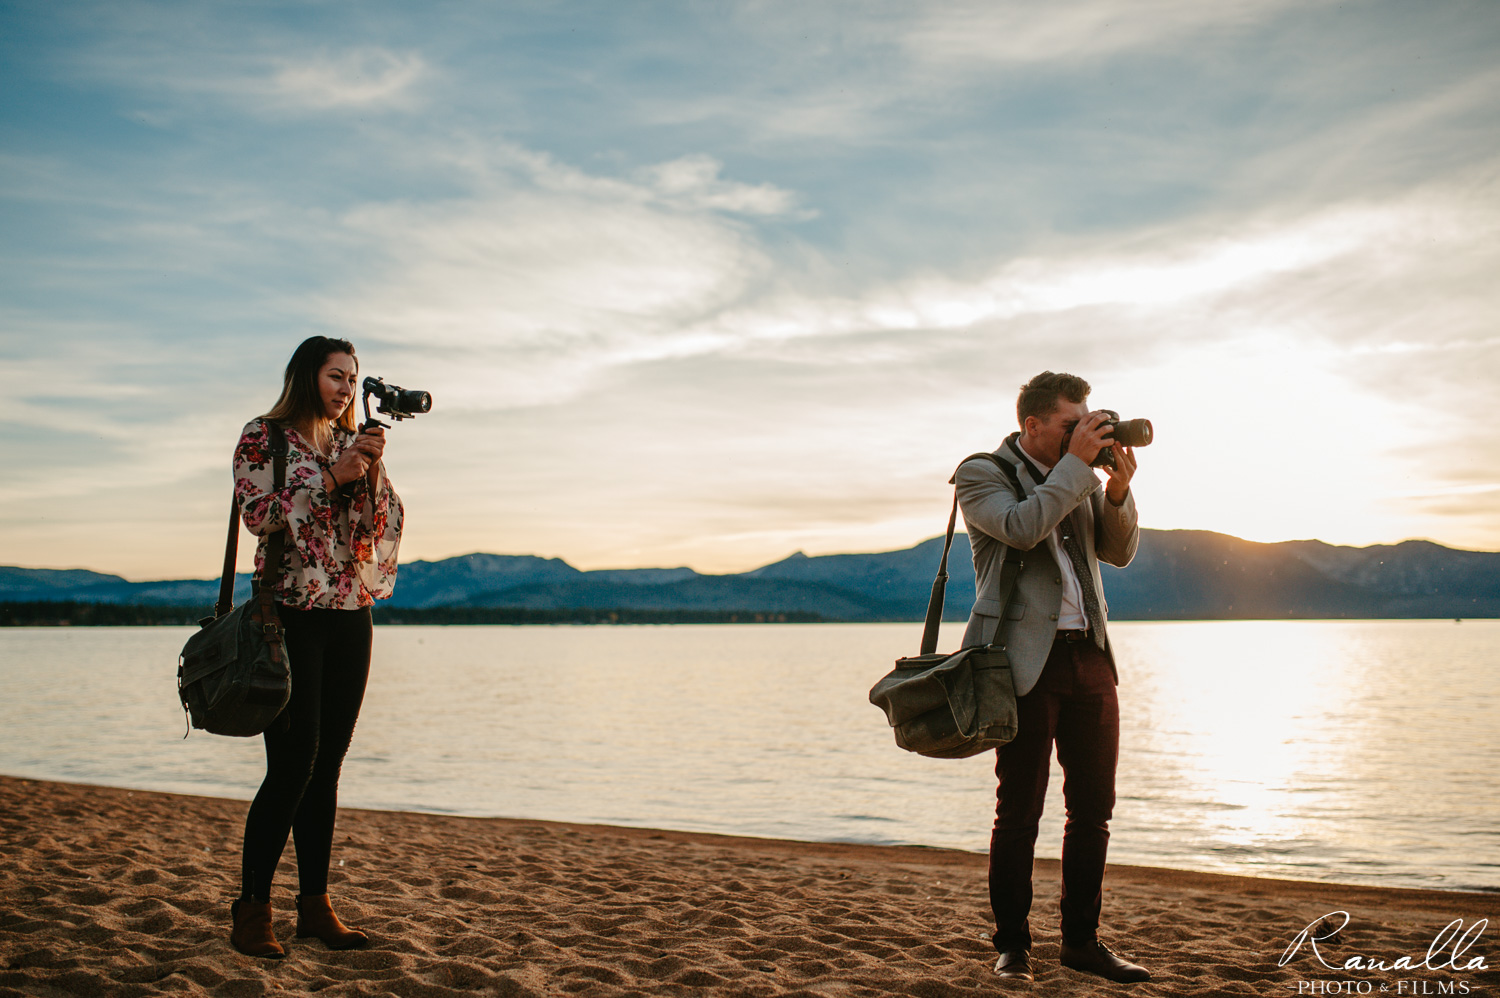 Wedding Photo and Video team in Lake Tahoe, California